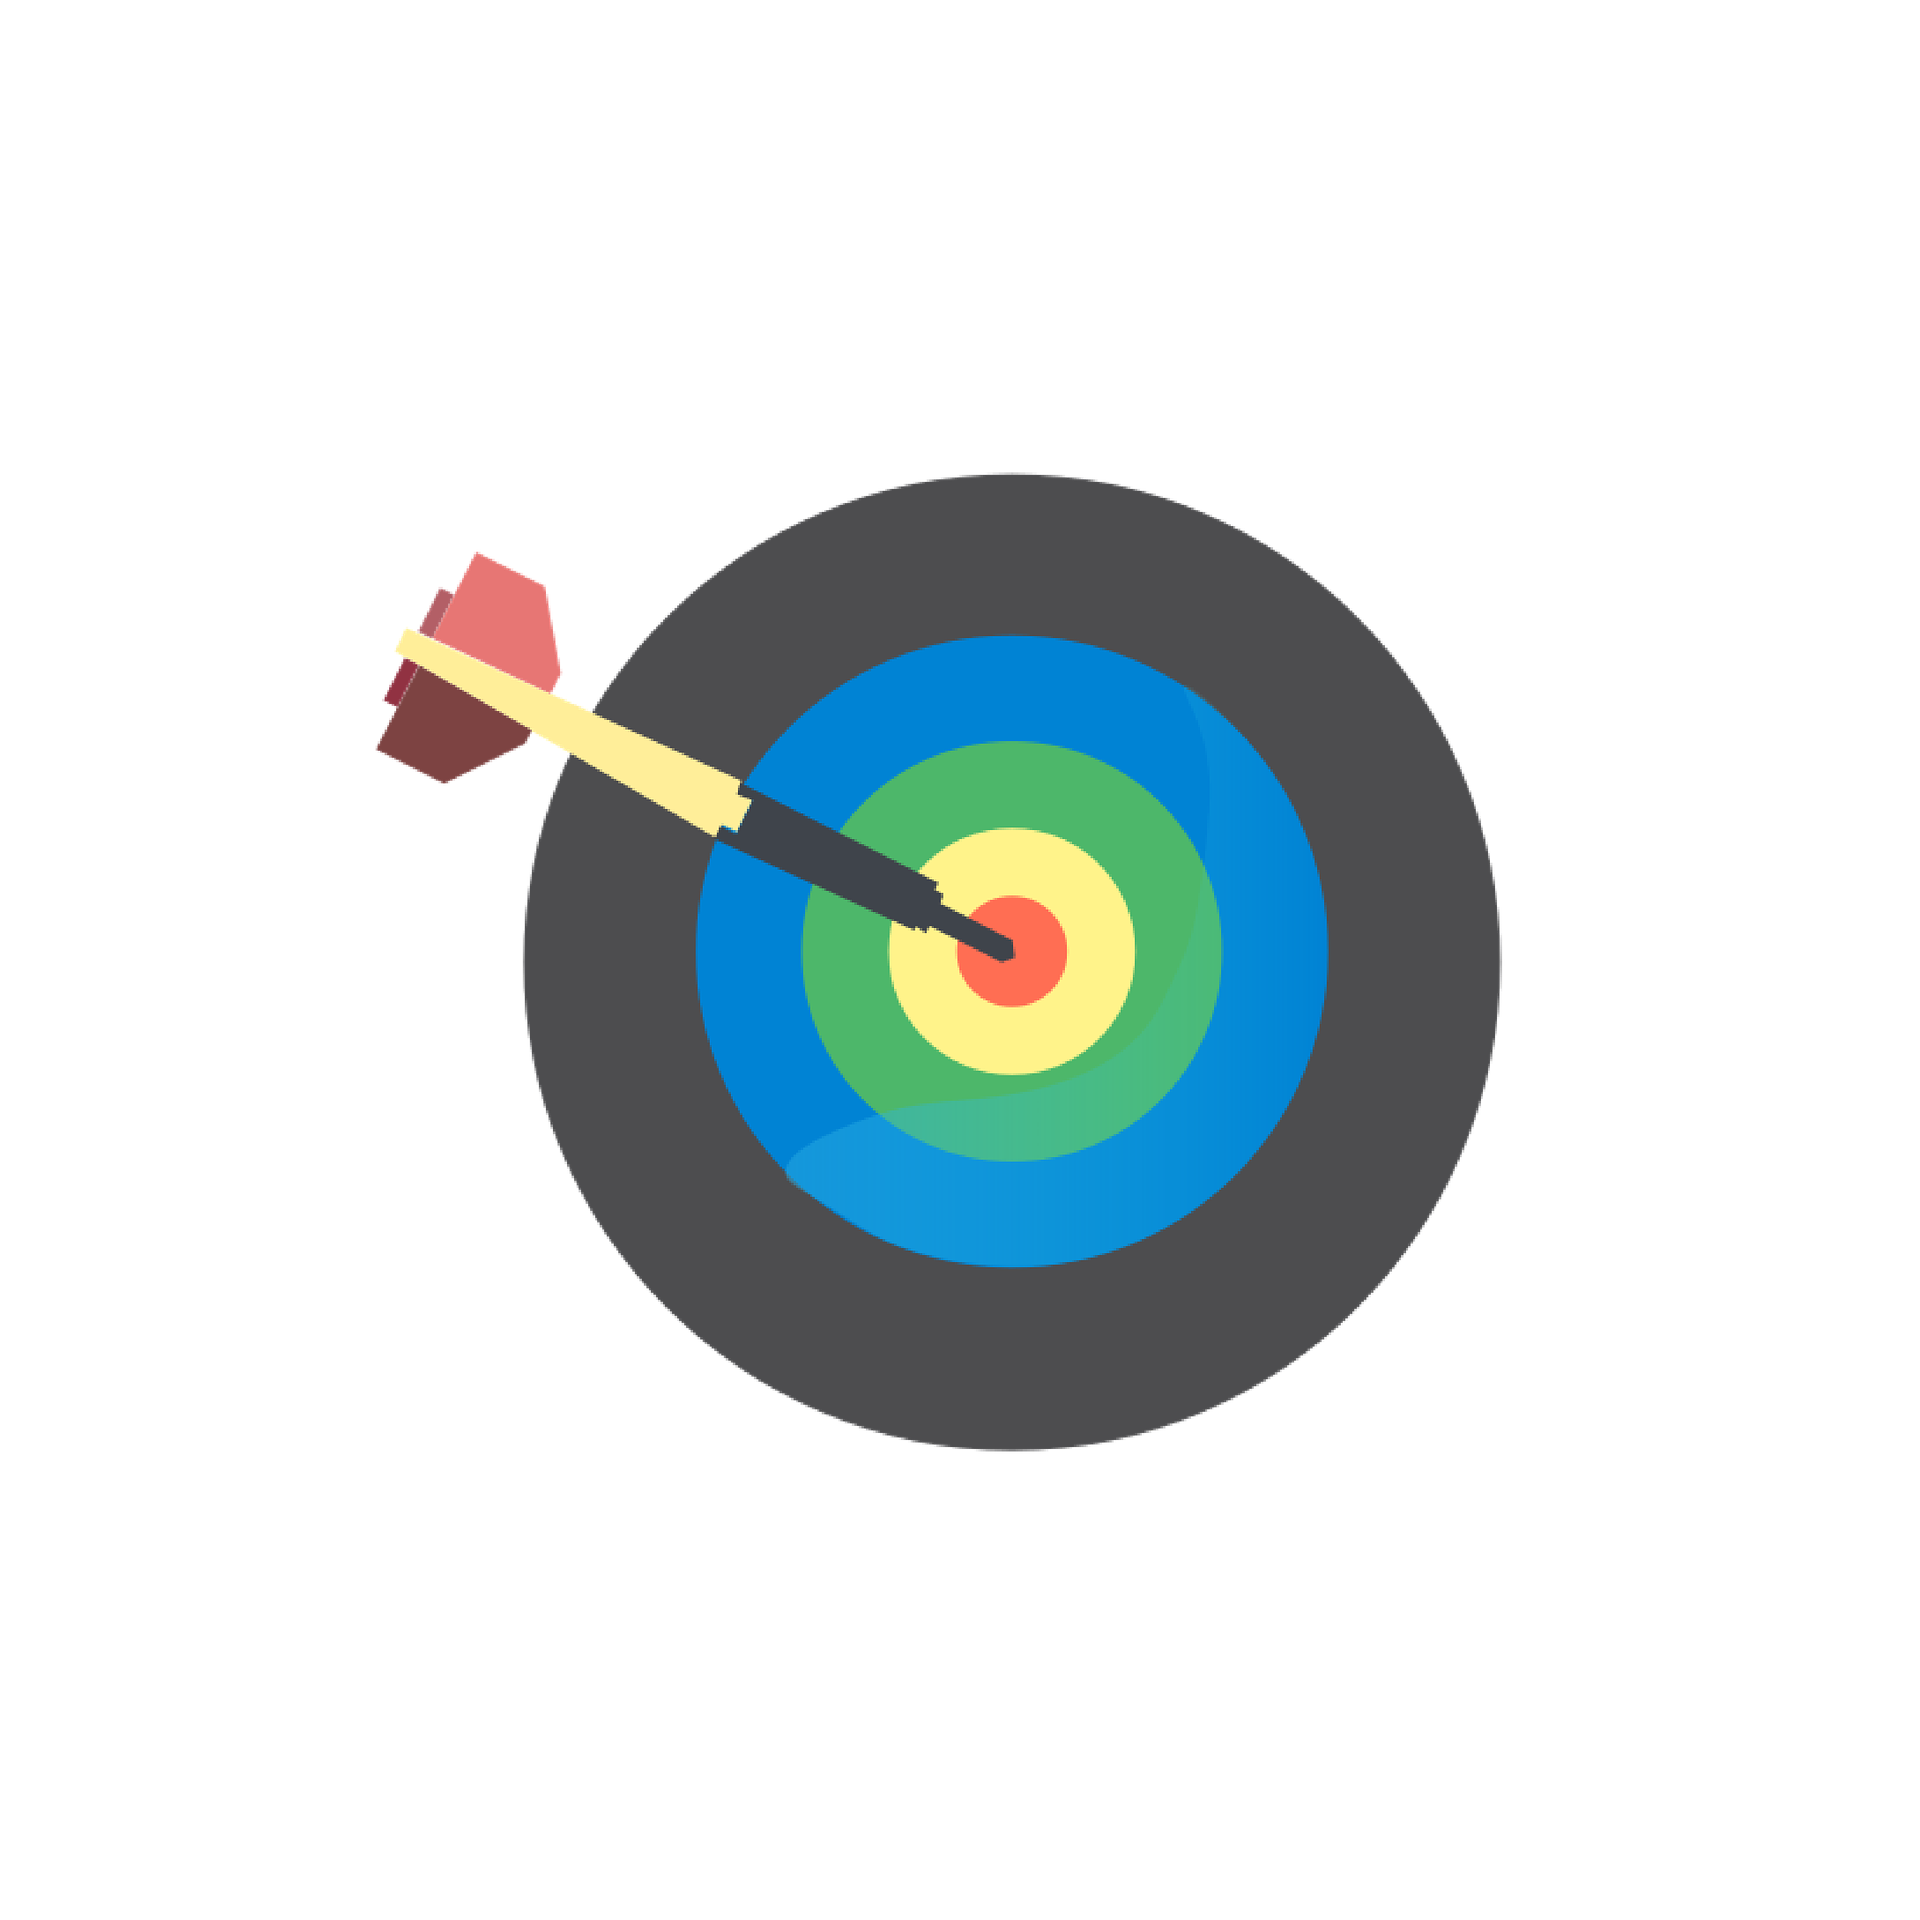 Bullseye with different colored rings with a single dart hitting the center f the target.